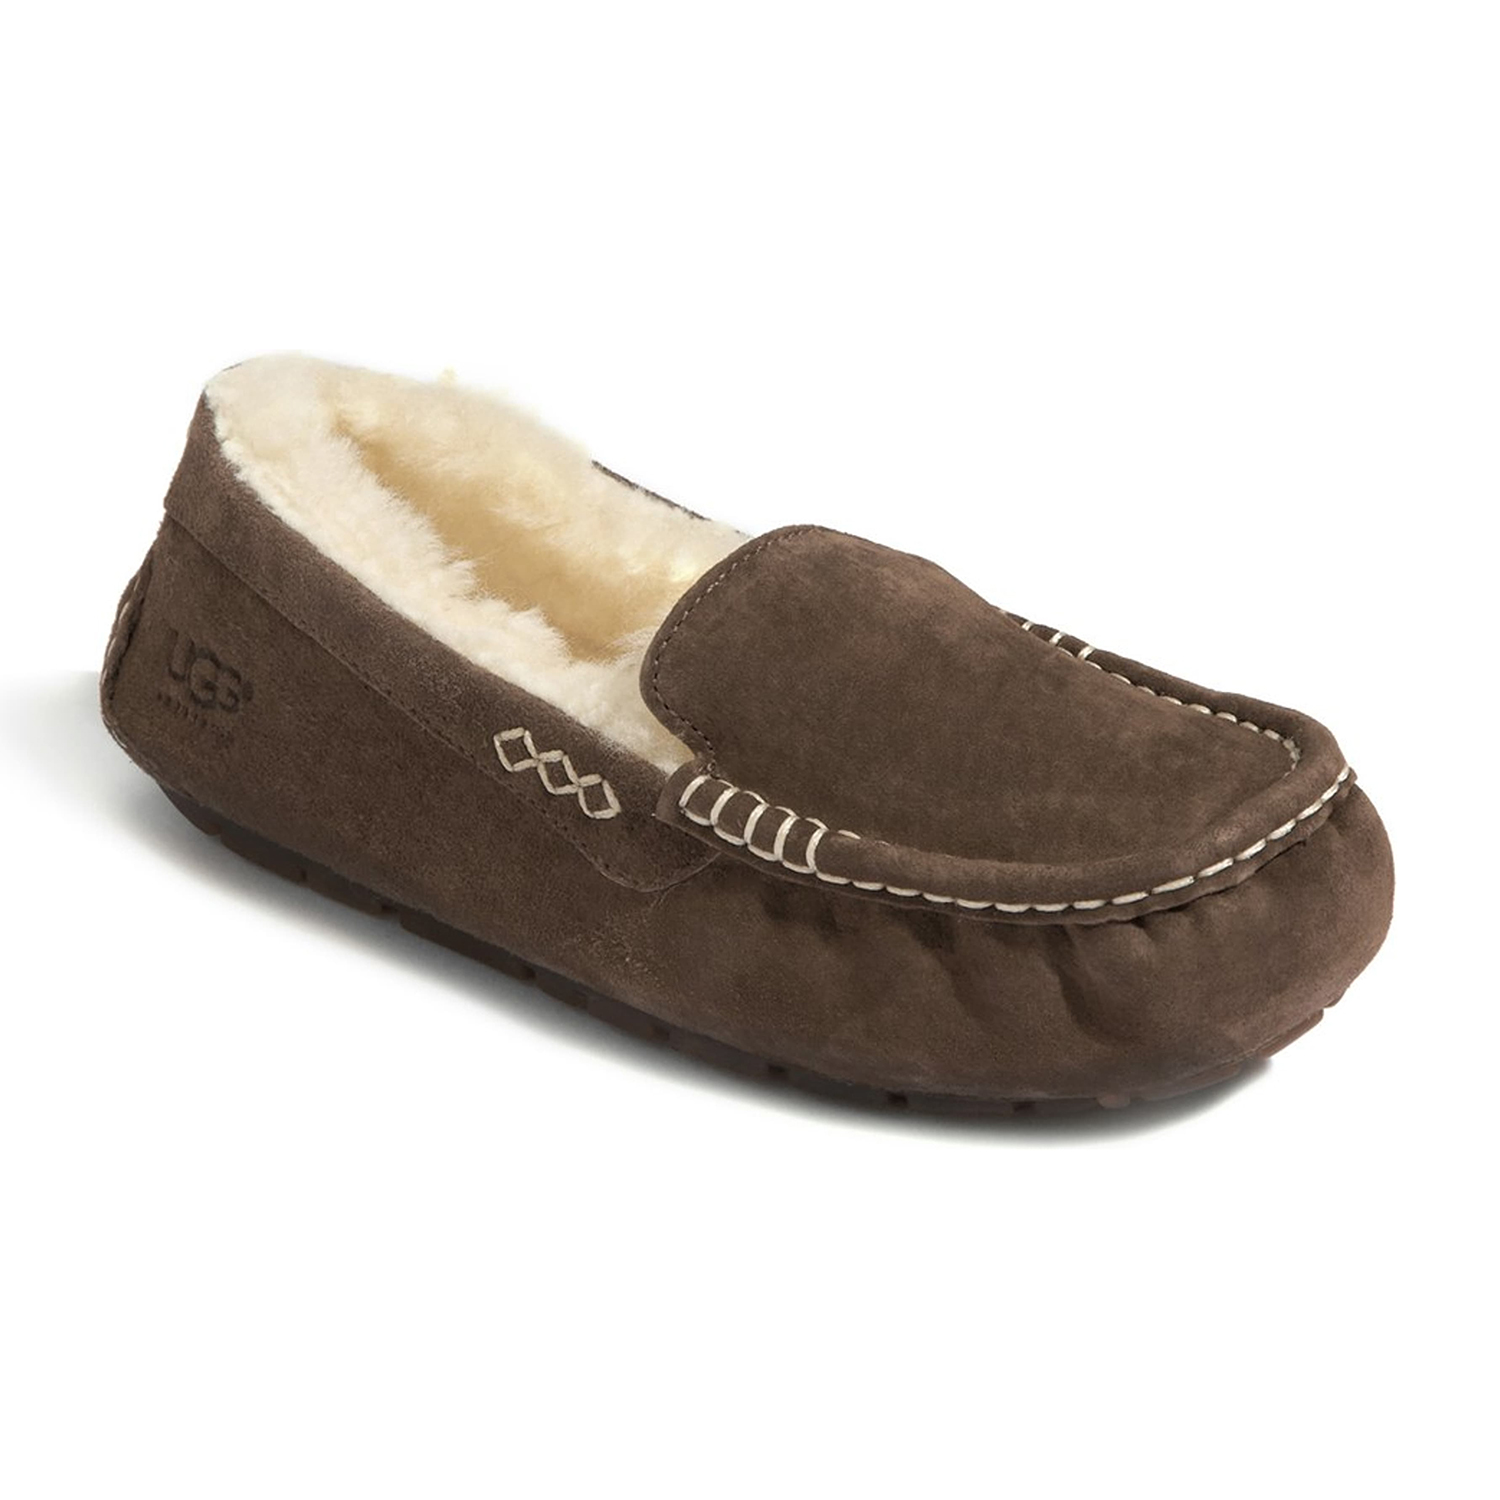 Ugg Ansley Water Resistant Slipper Chocolate